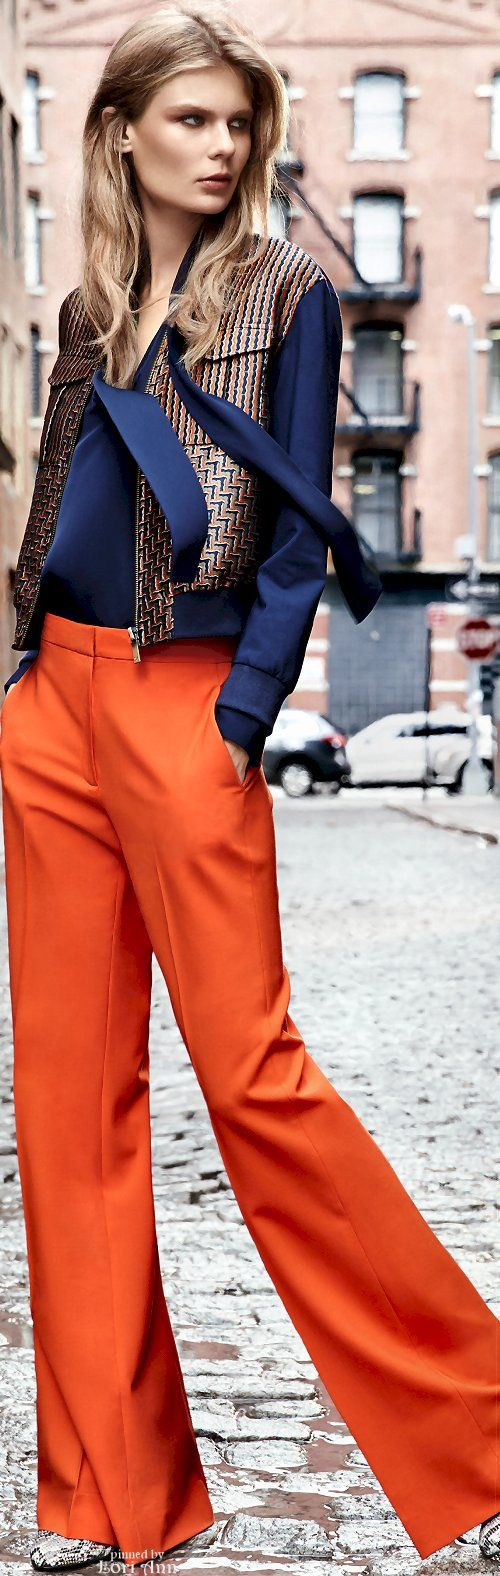 Best 25+ Orange pants outfit ideas on Pinterest | Womenu0026#39;s orange jeans Coral jeans and Orange ...